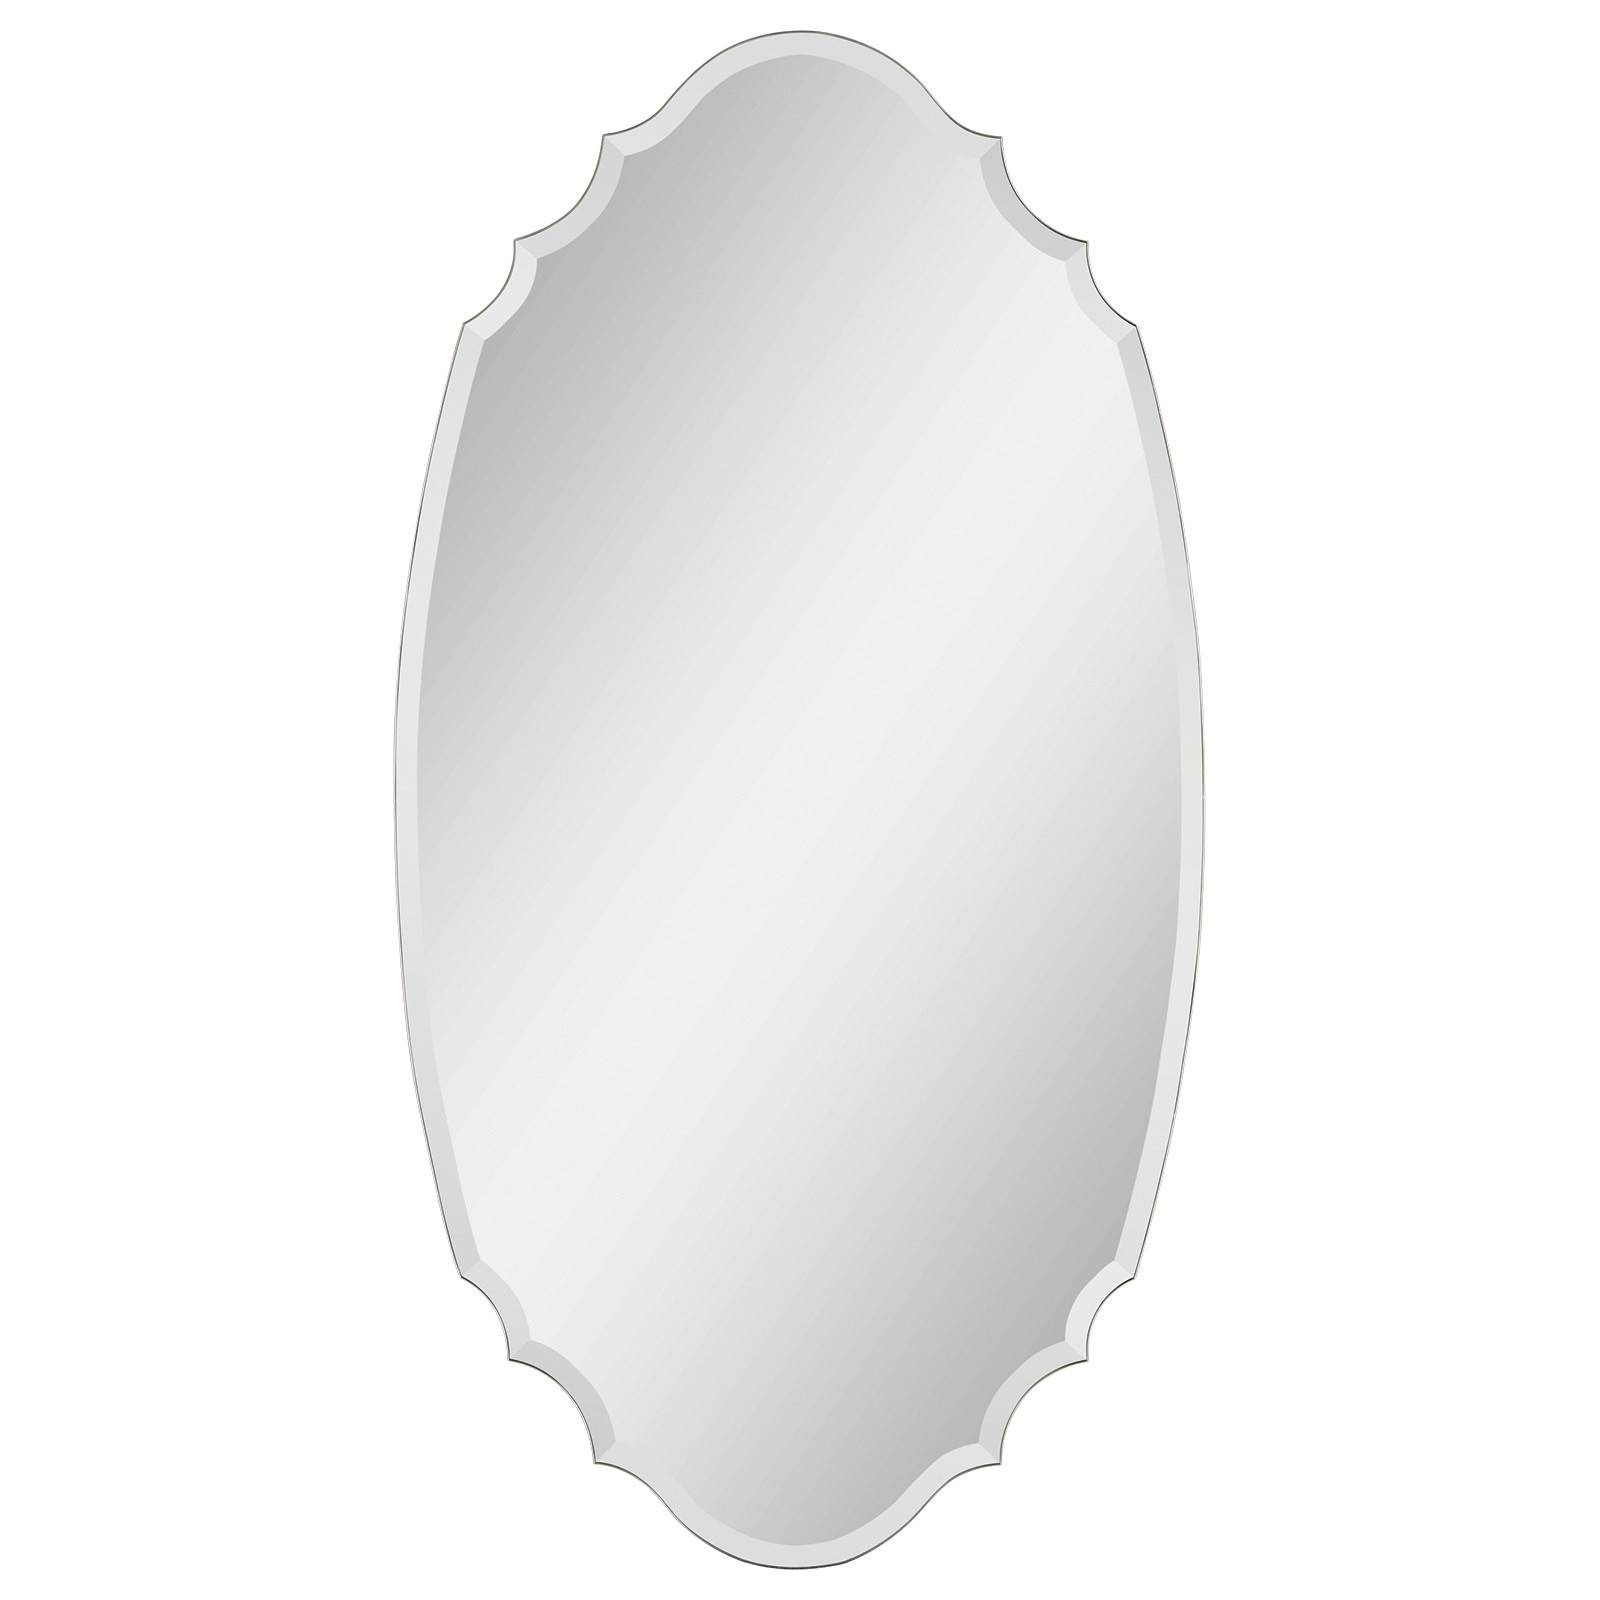 Modern decorative high quality etched frameless silver mirror